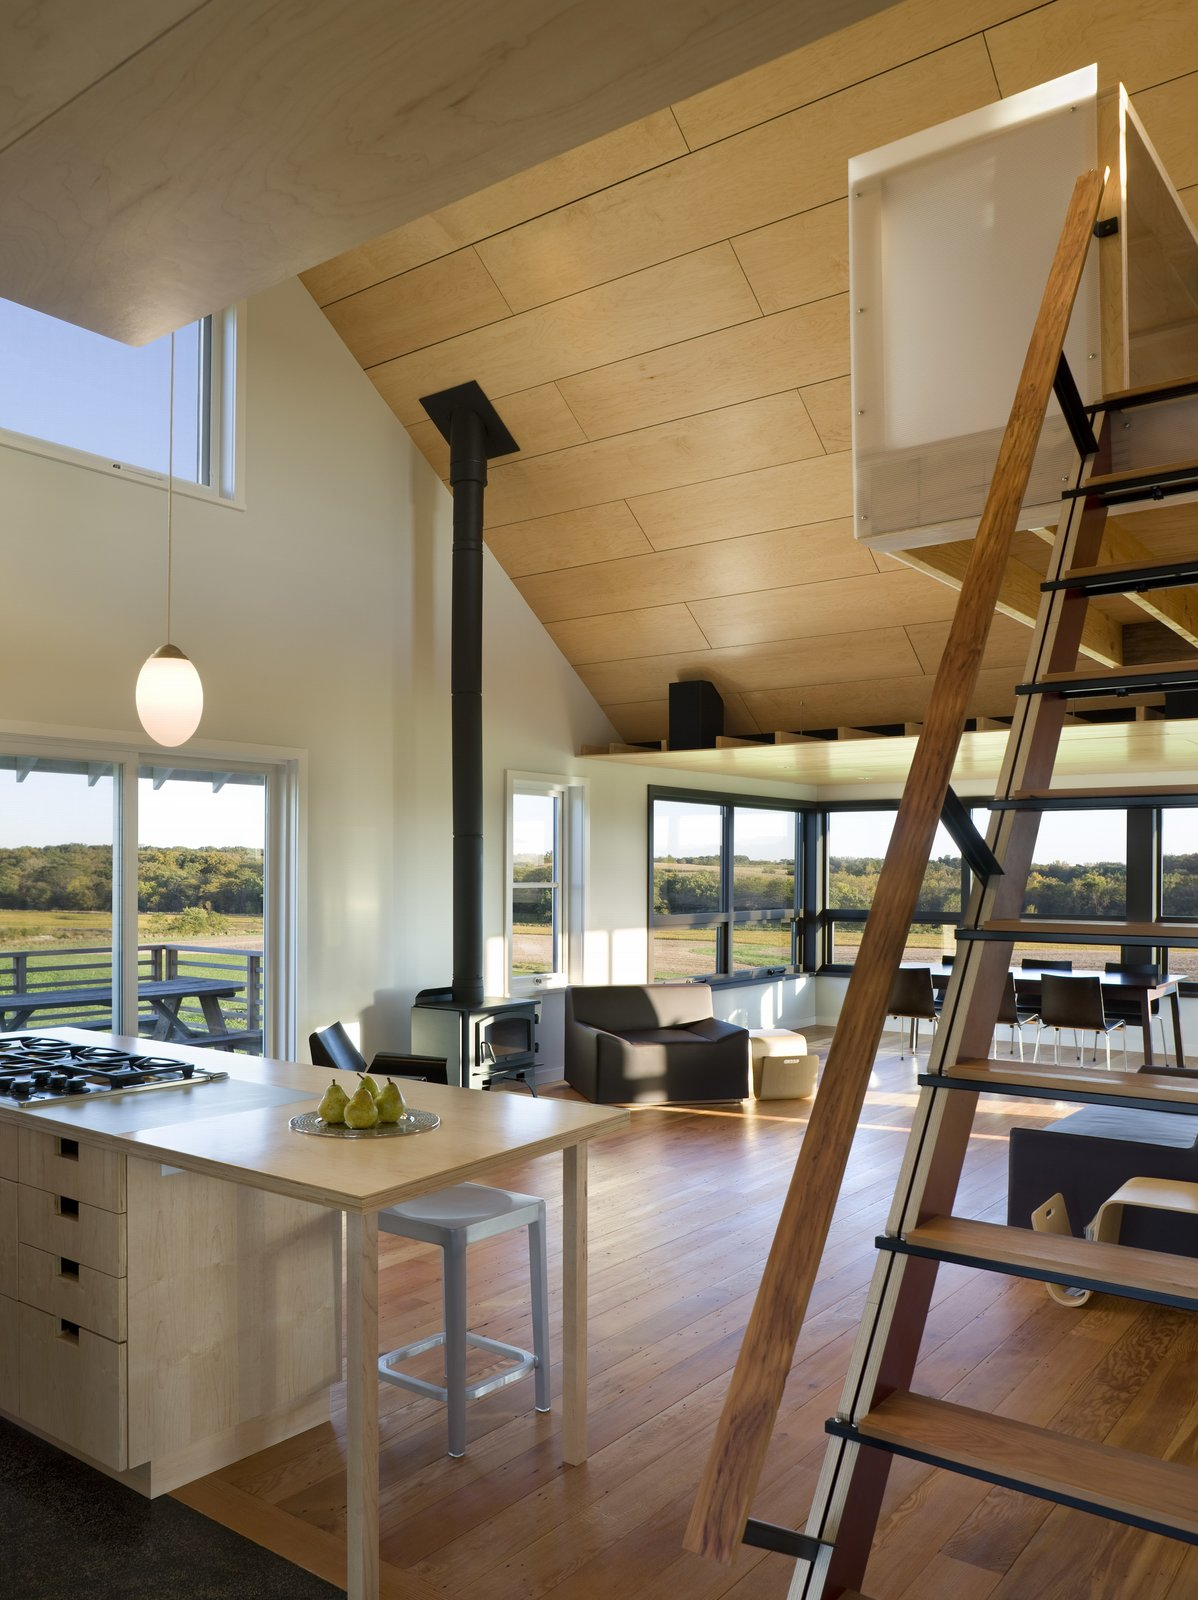 Sliding fabric panels allow the enclosed porch to be used for dining or overflow sleeping. A loft overlooking the main living space and views of the farm serves as office space.  Photo 2 of 10 in 10 Enclosed Porches That Are Put to Good Use